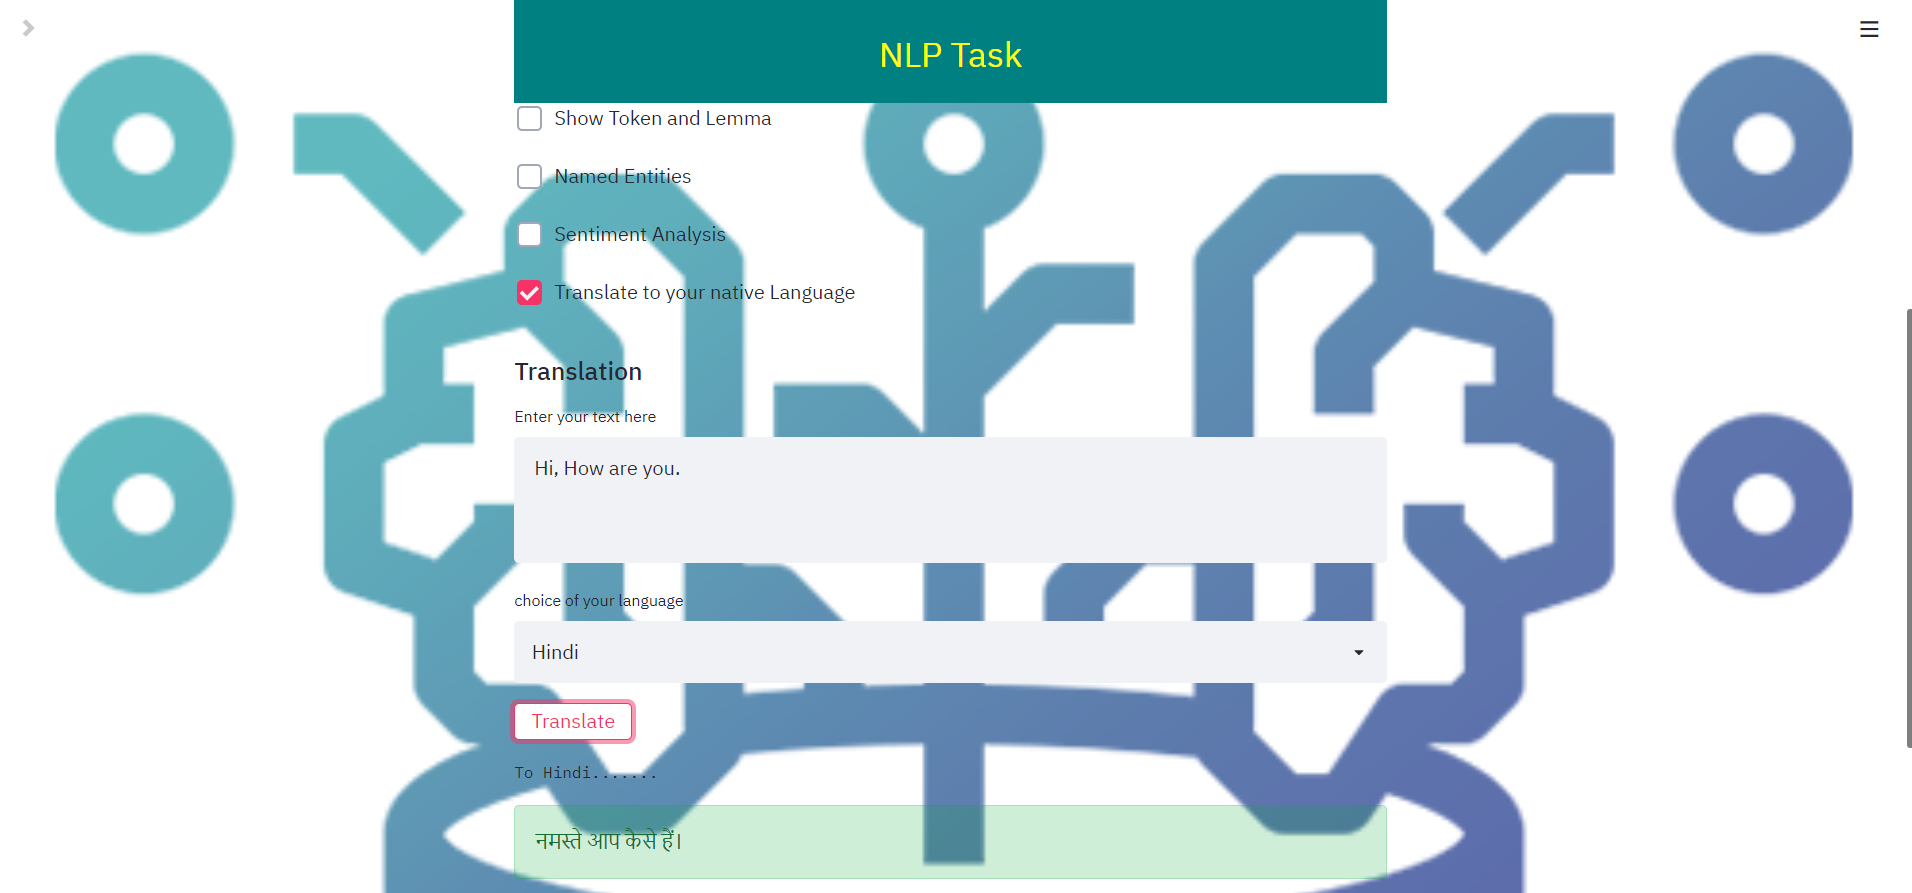 Some of the most important and useful NLP tasks.